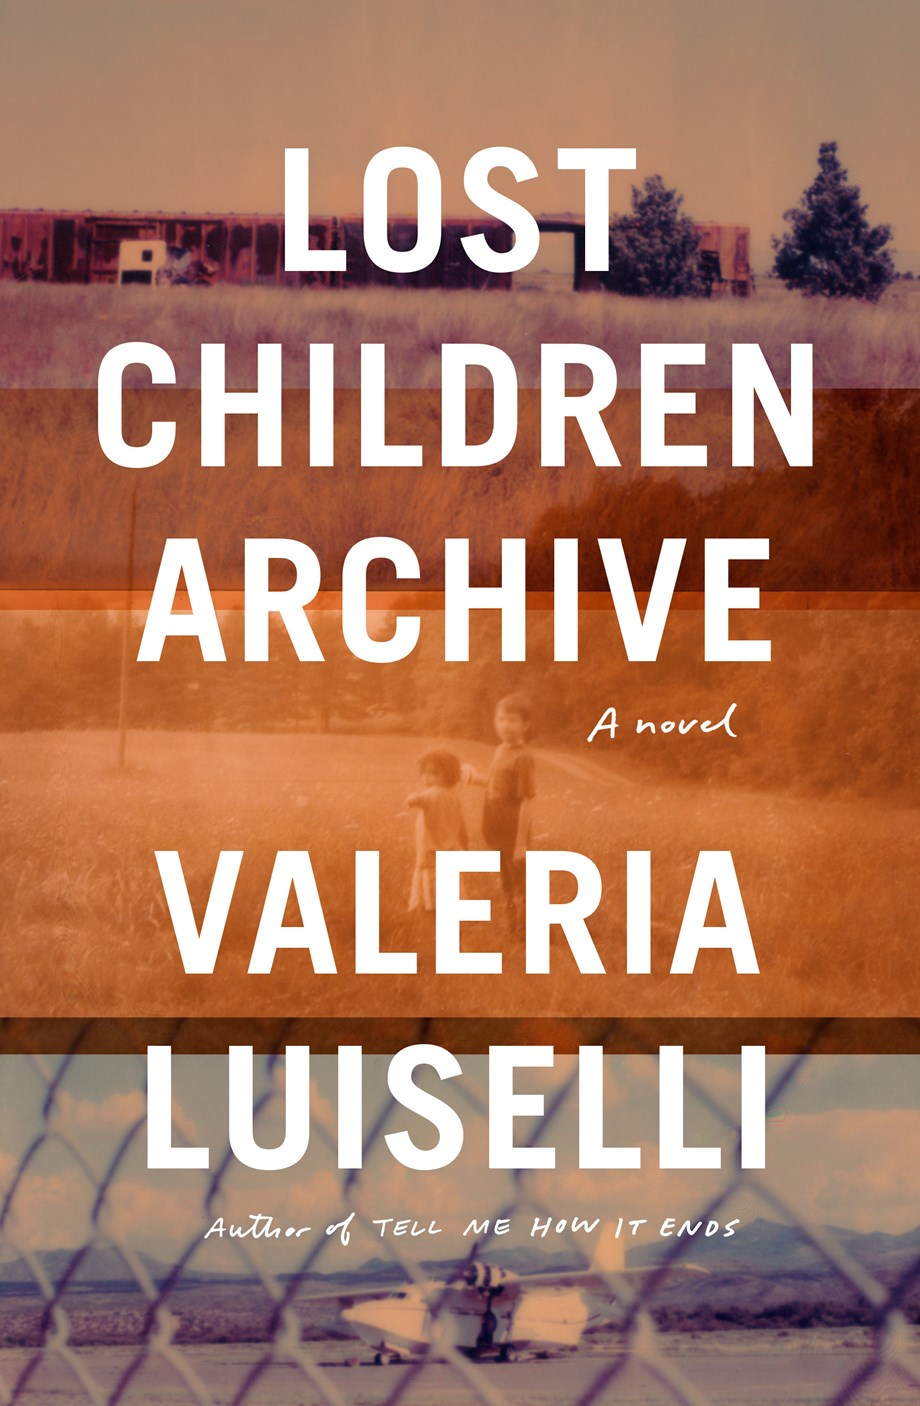 Lost Children Archive by Valeria Luiselli (Knopf)